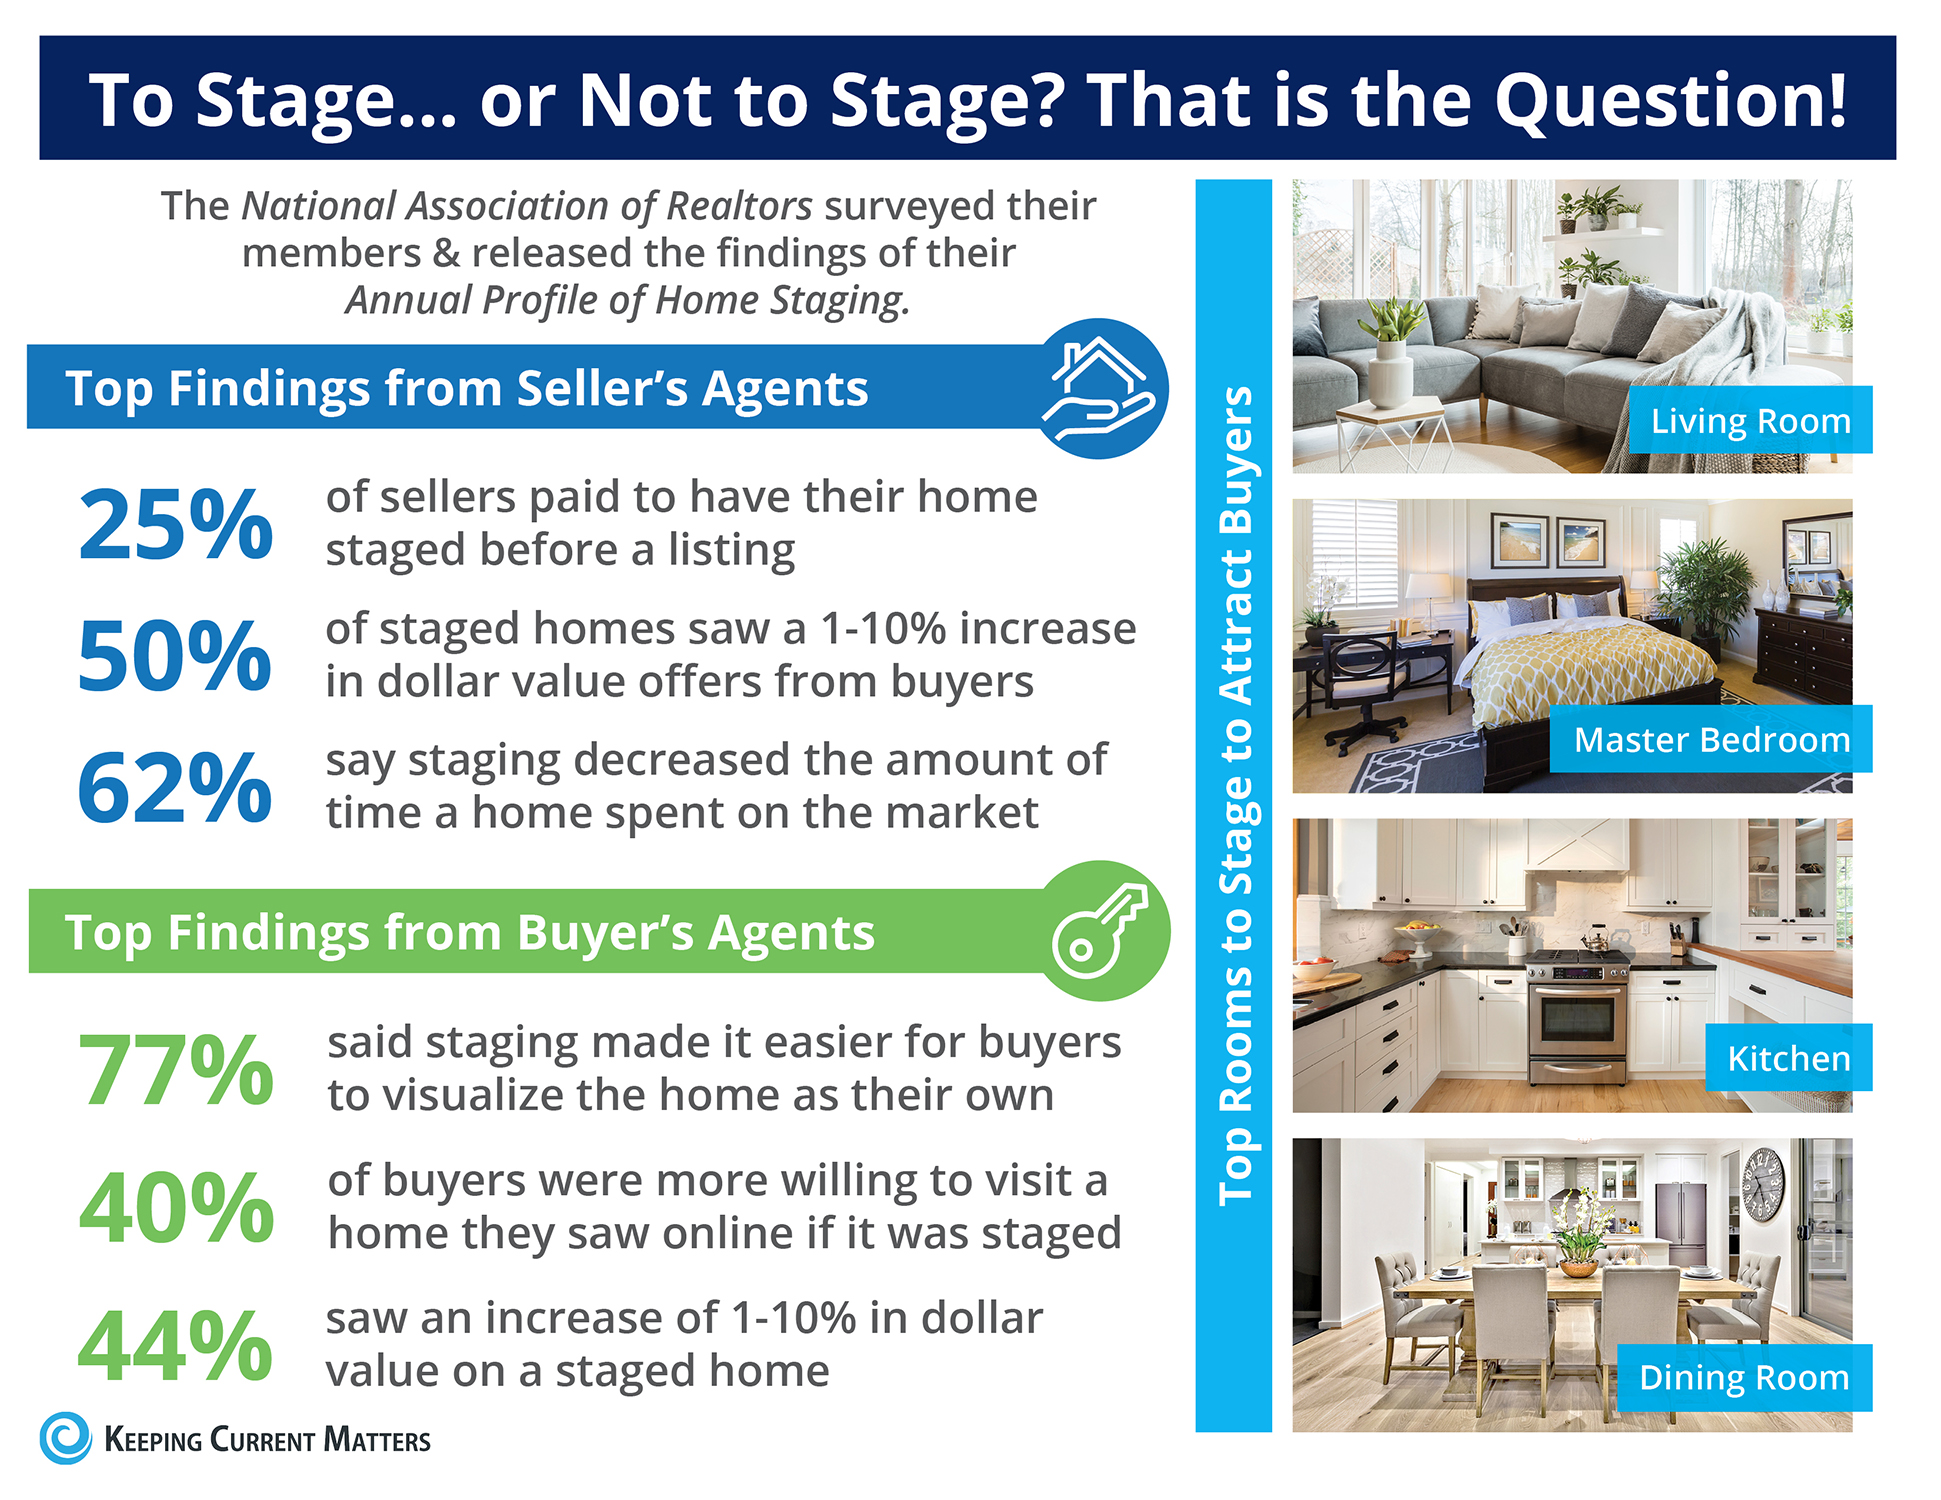 Benefits home home staging for selling a home in Prosper Celina Frisco Melissa Mckinney Little Elm Plano Lewisville Texas